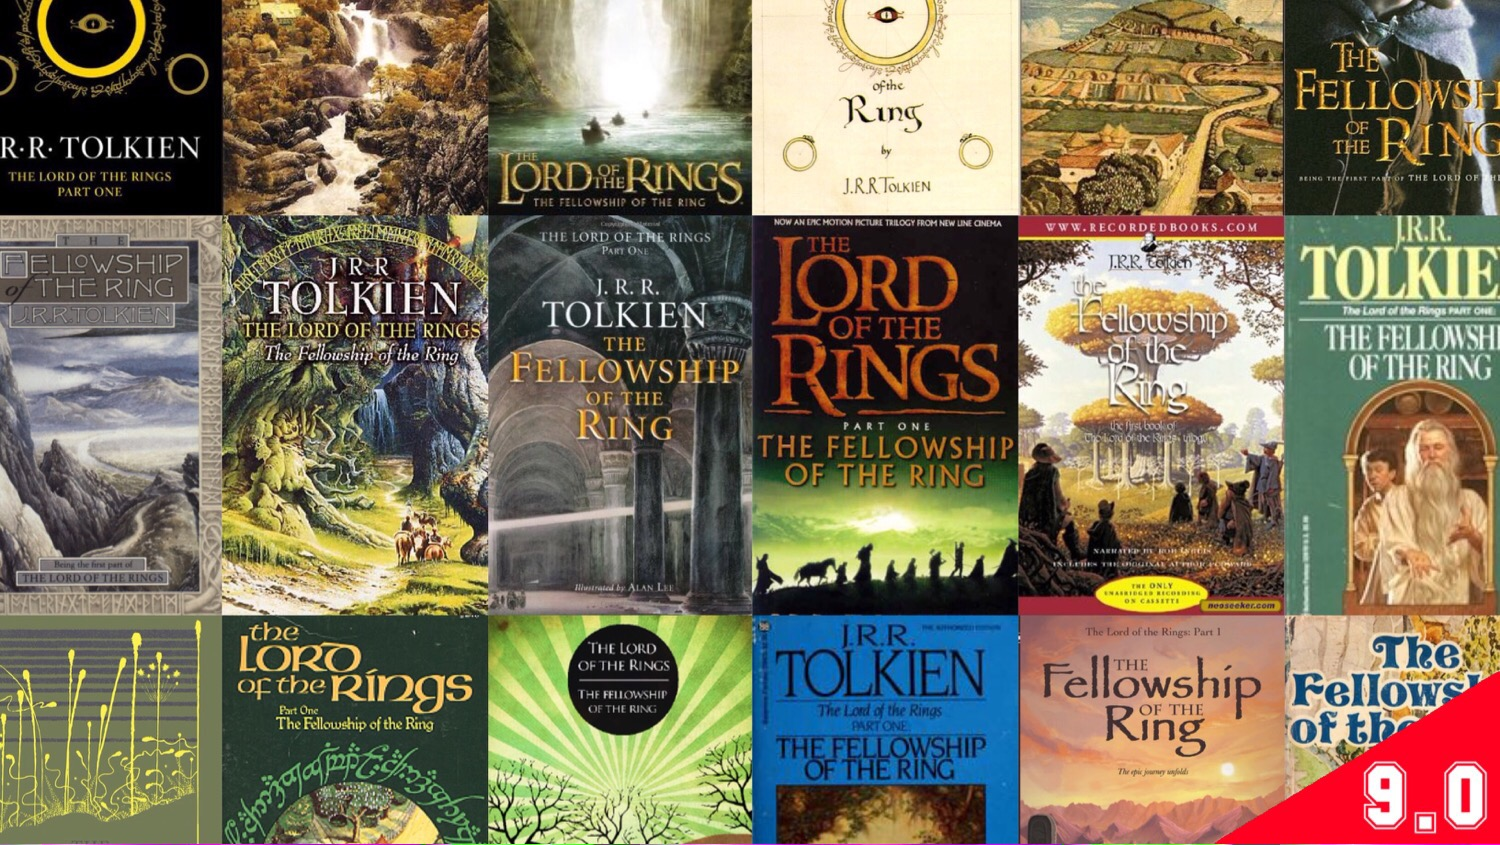 Lord of the rings book review